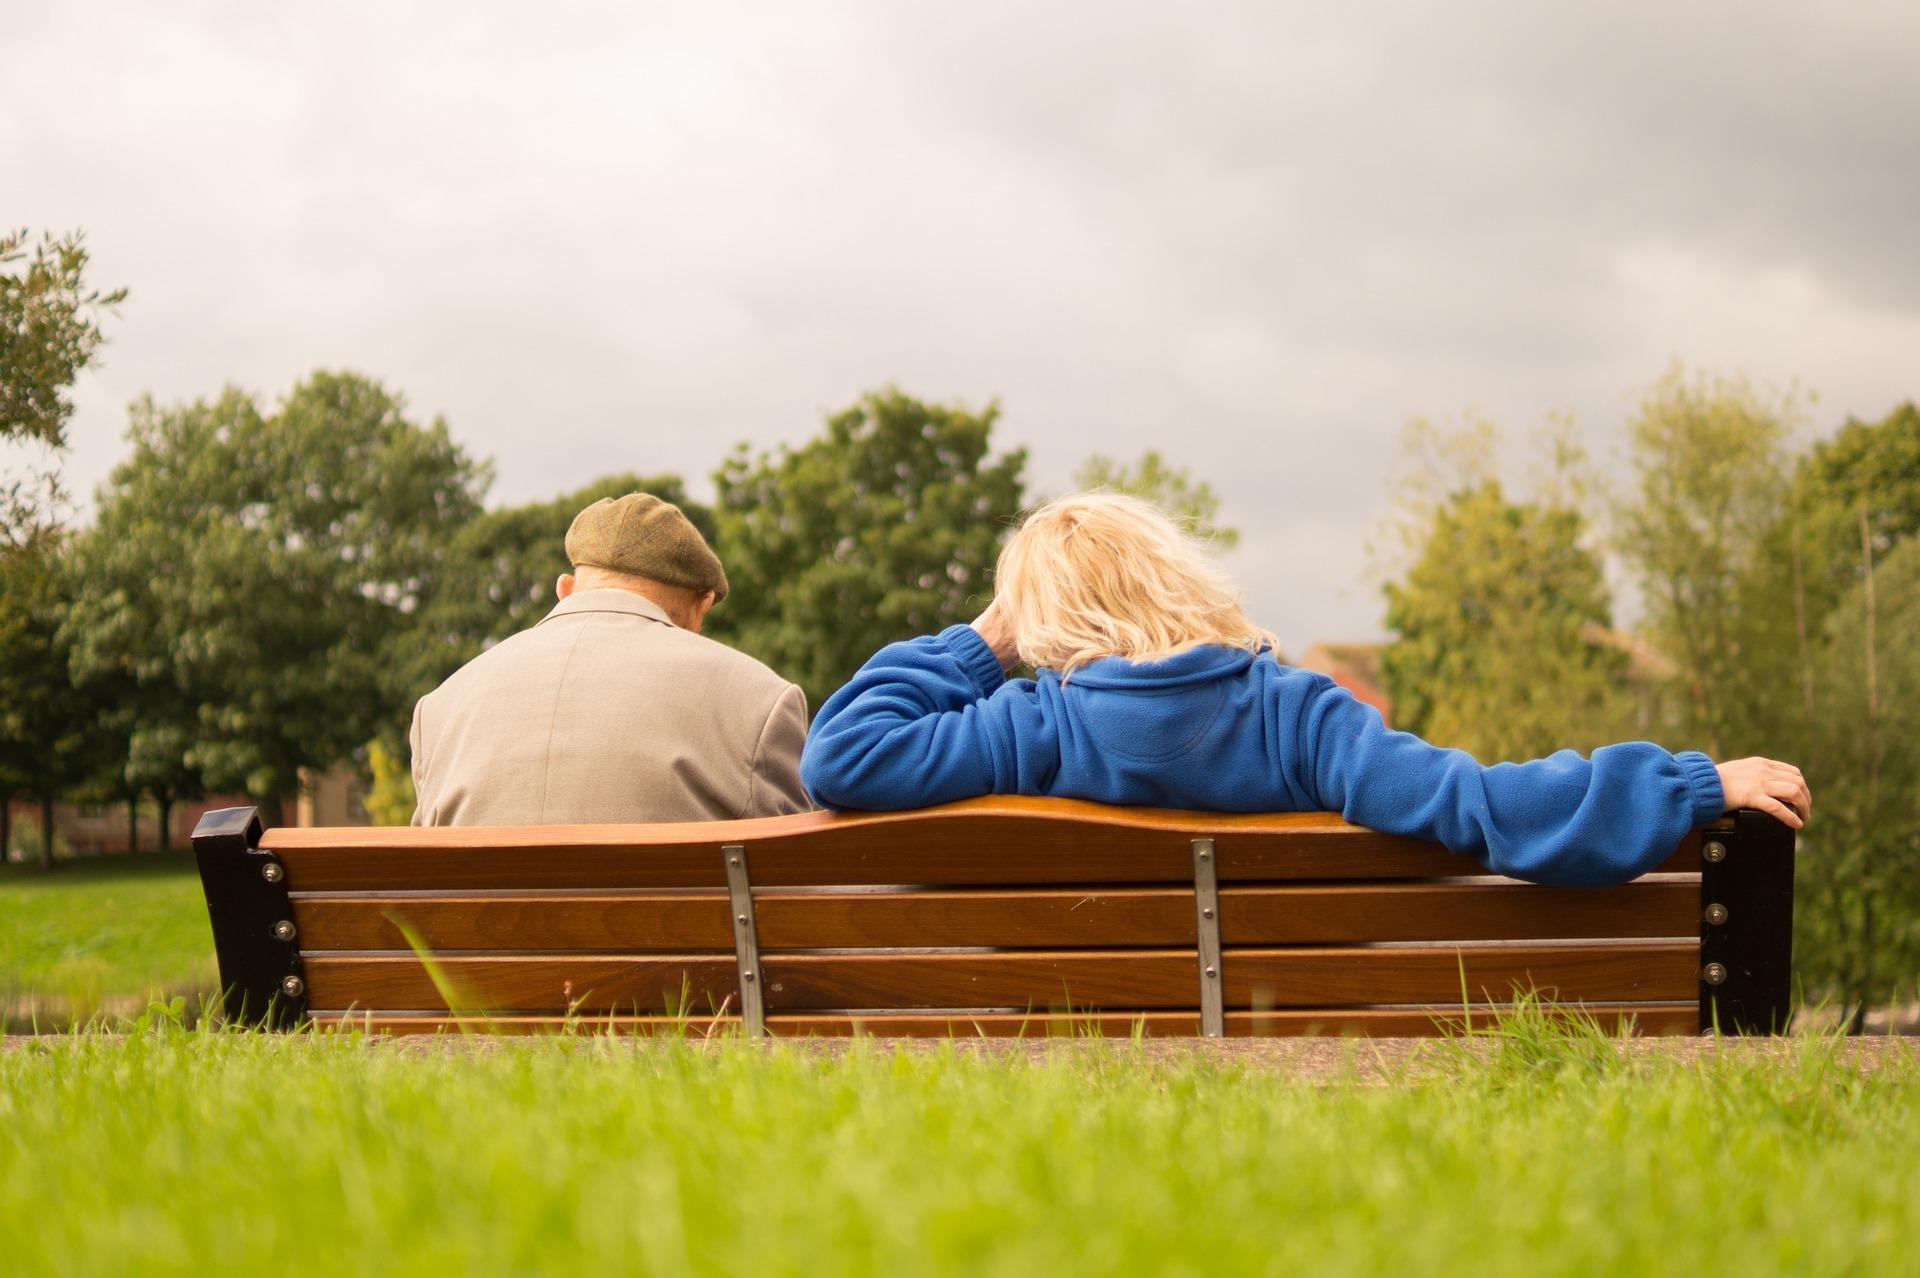 What are the benefits of being outside for care home residents?